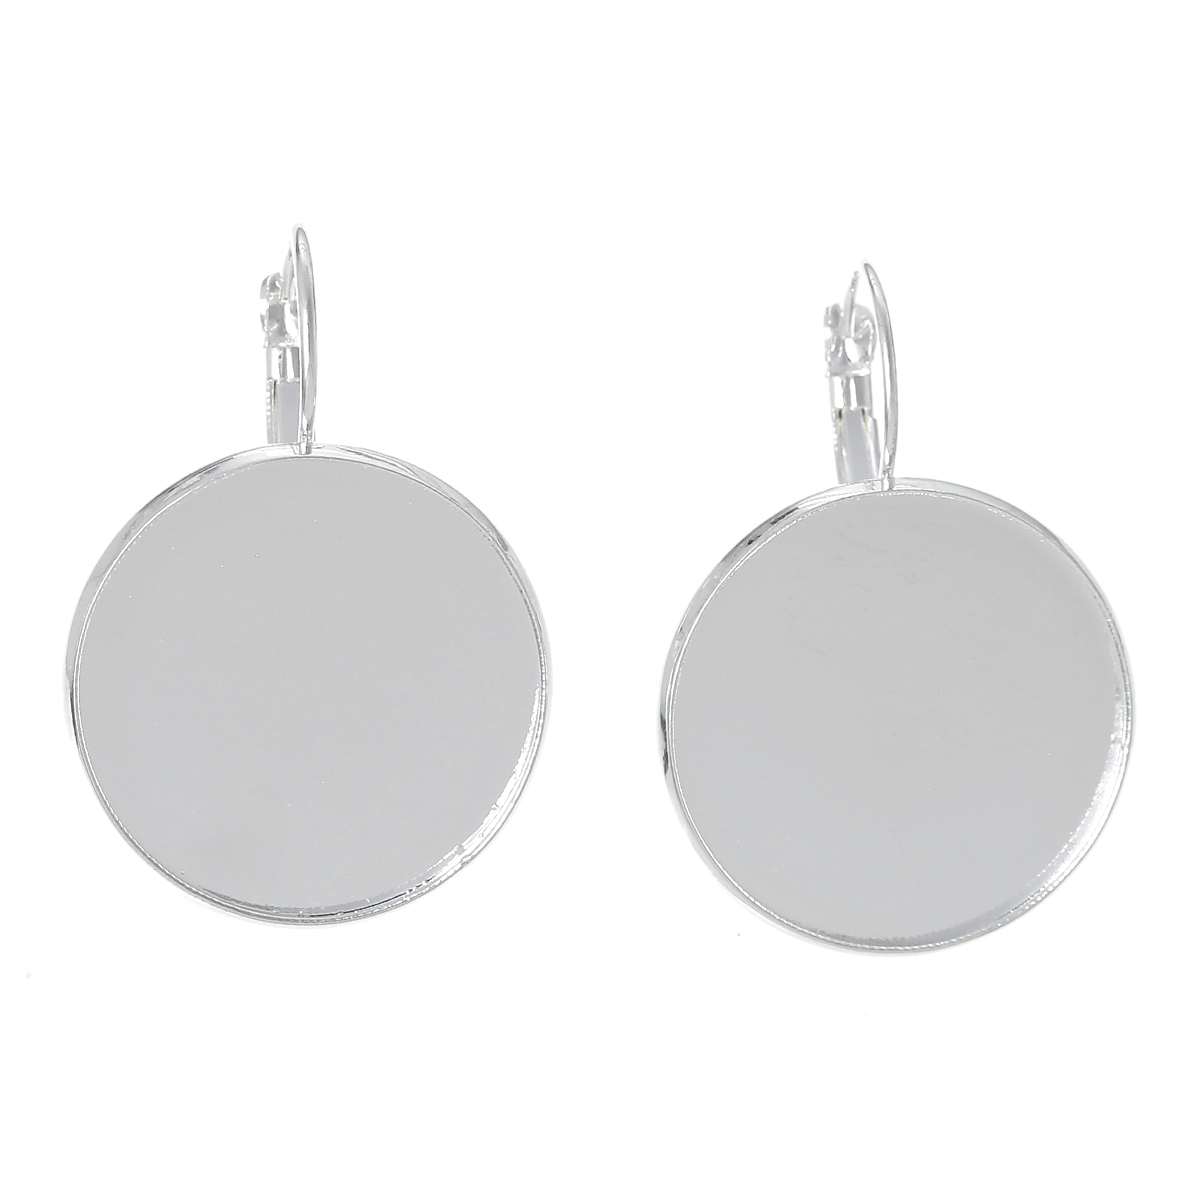 Copper Earring Clip Findings Round Silver Plated Cabochon Settings(Fits 25mm)38mm(1 4/8)x 27mm(1 1/8),10 PCs